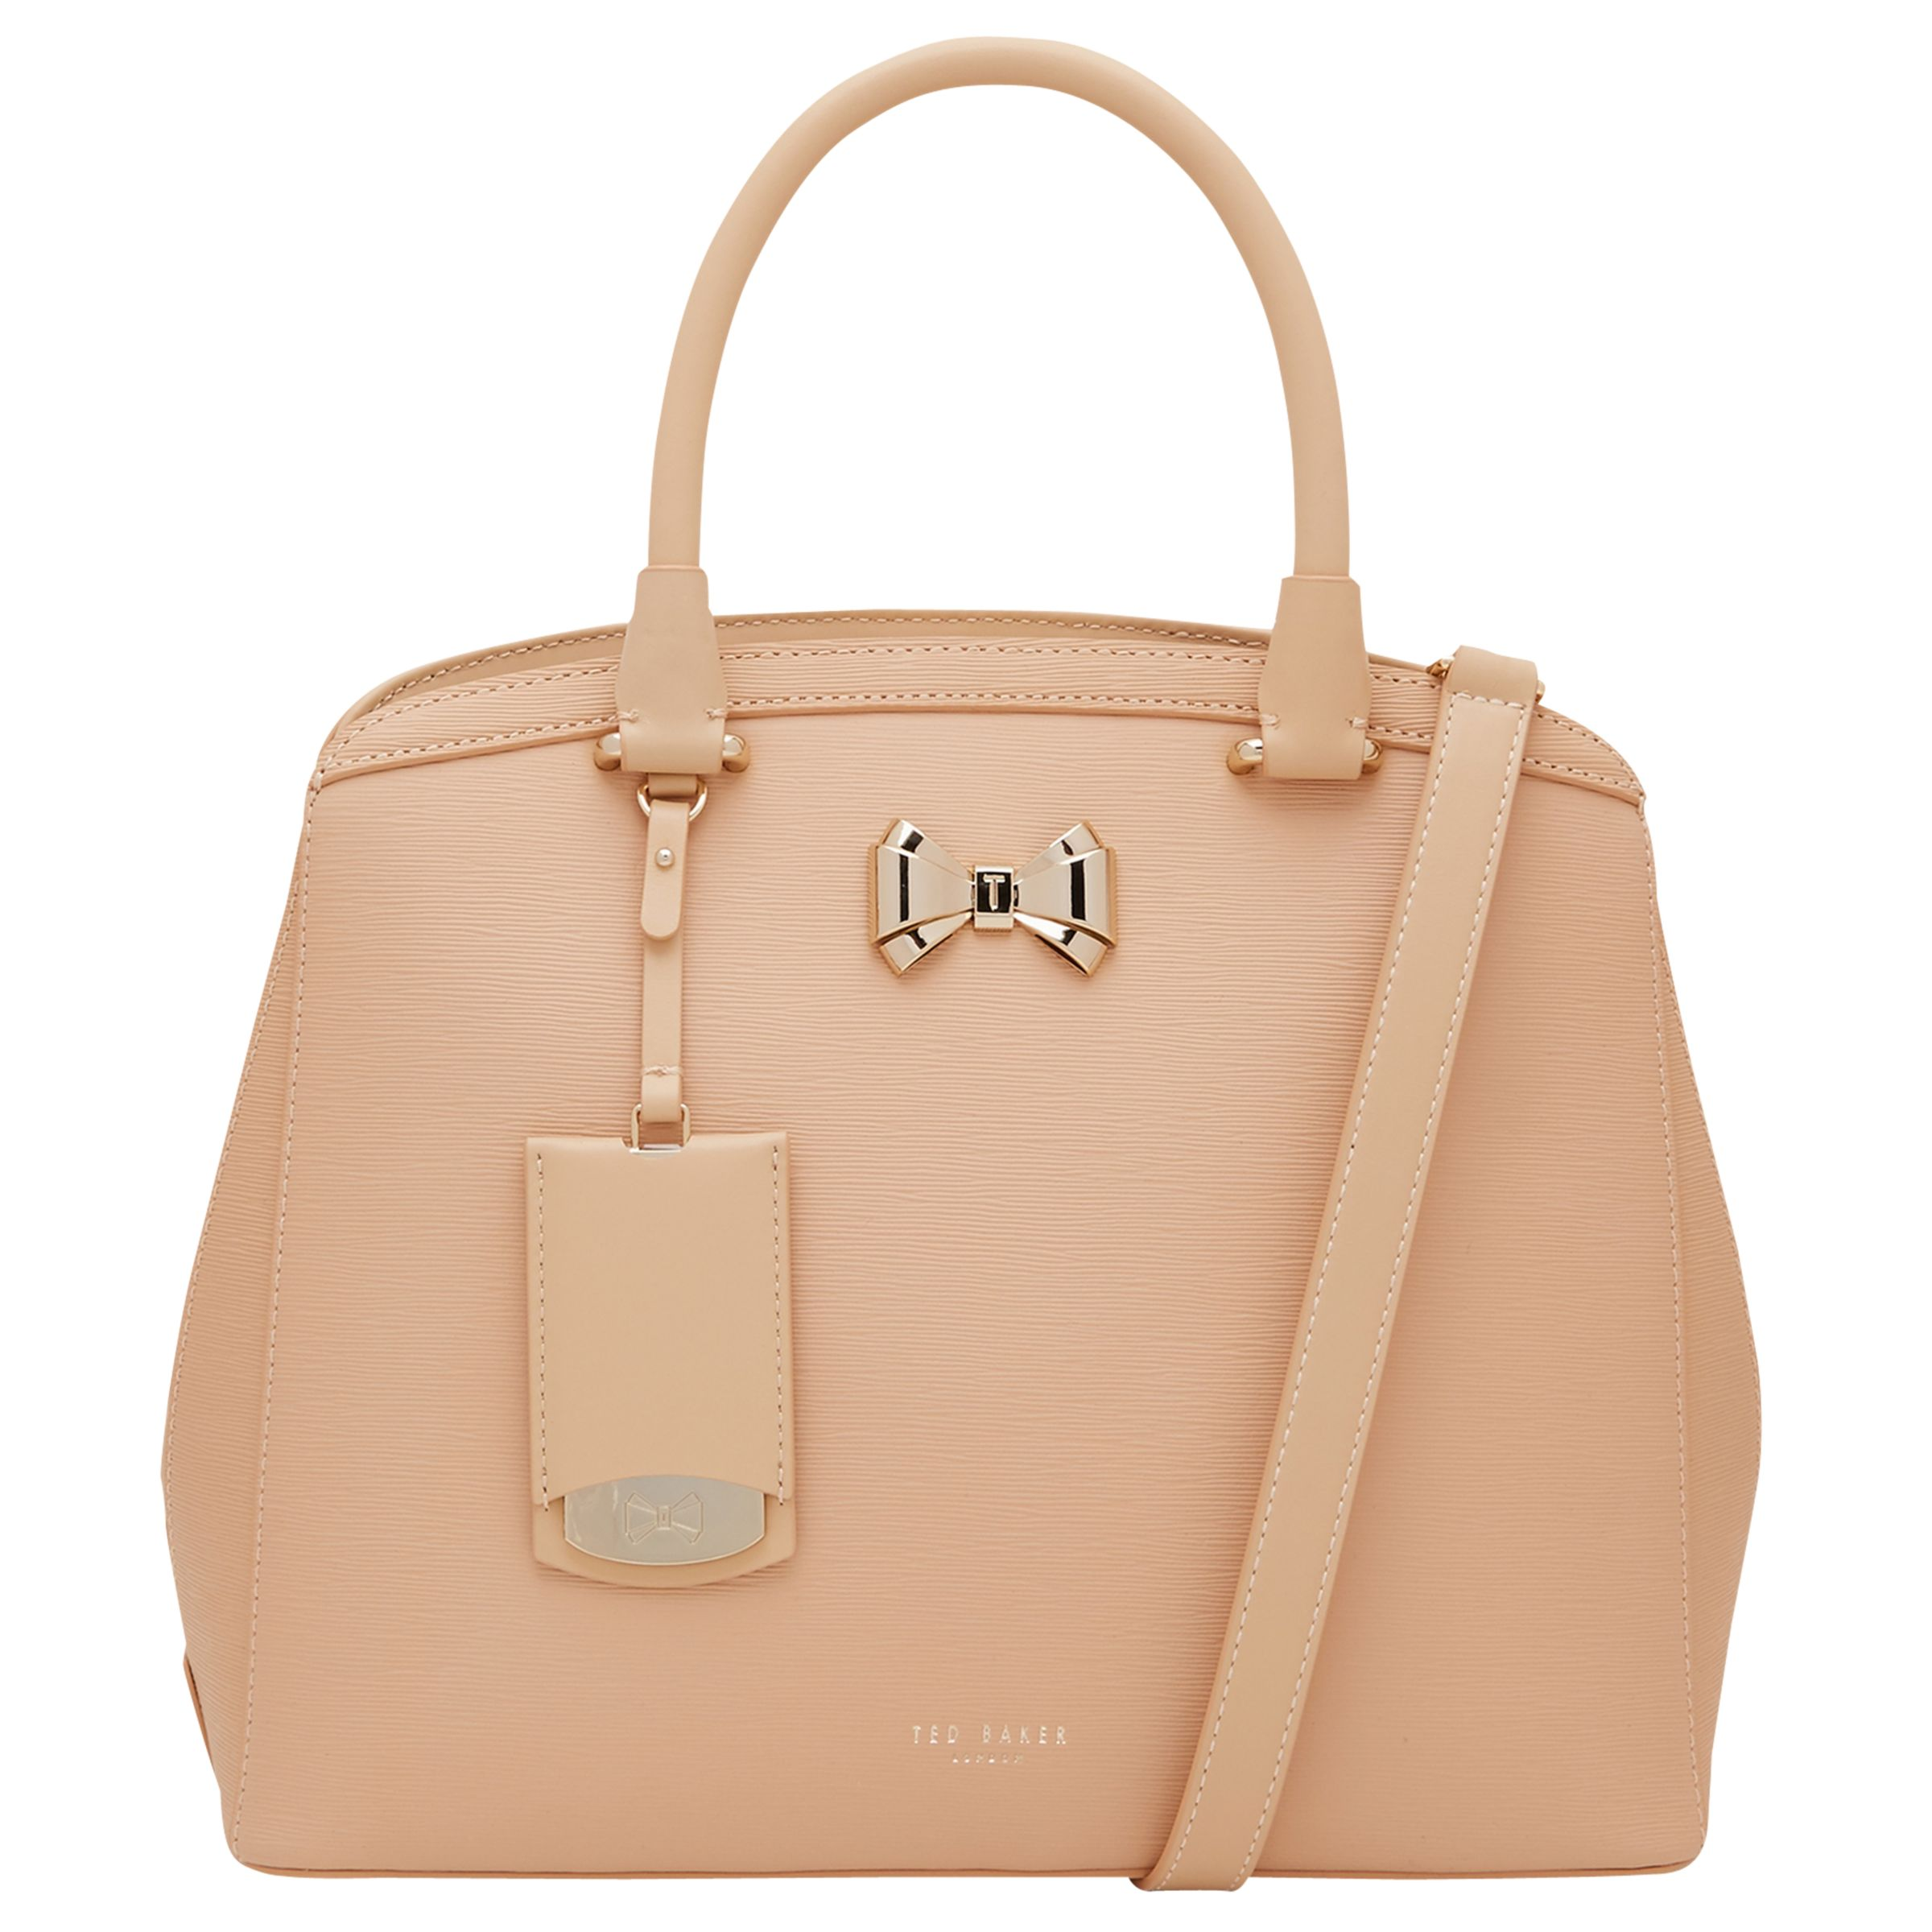 81099b17f59ec Ted Baker Tealia Curved Bow Small Leather Tote Bag at John Lewis   Partners